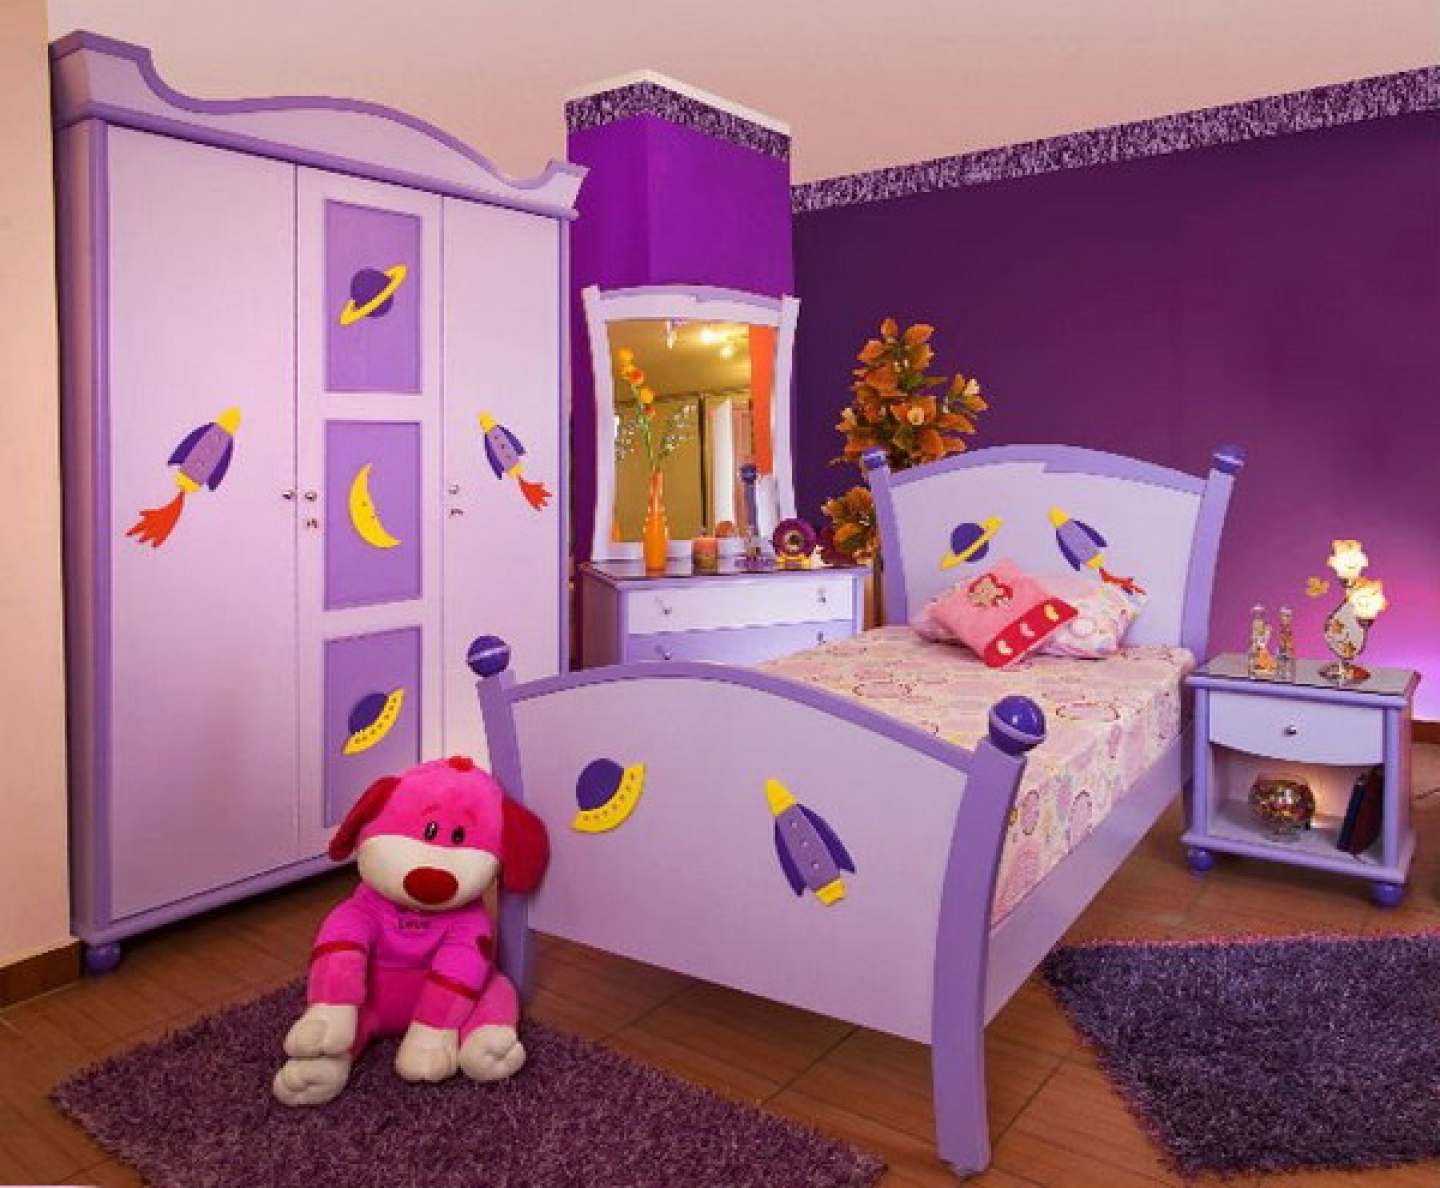 Bed clipart childrens bedroom For 1206201919 Kid Art Amazing